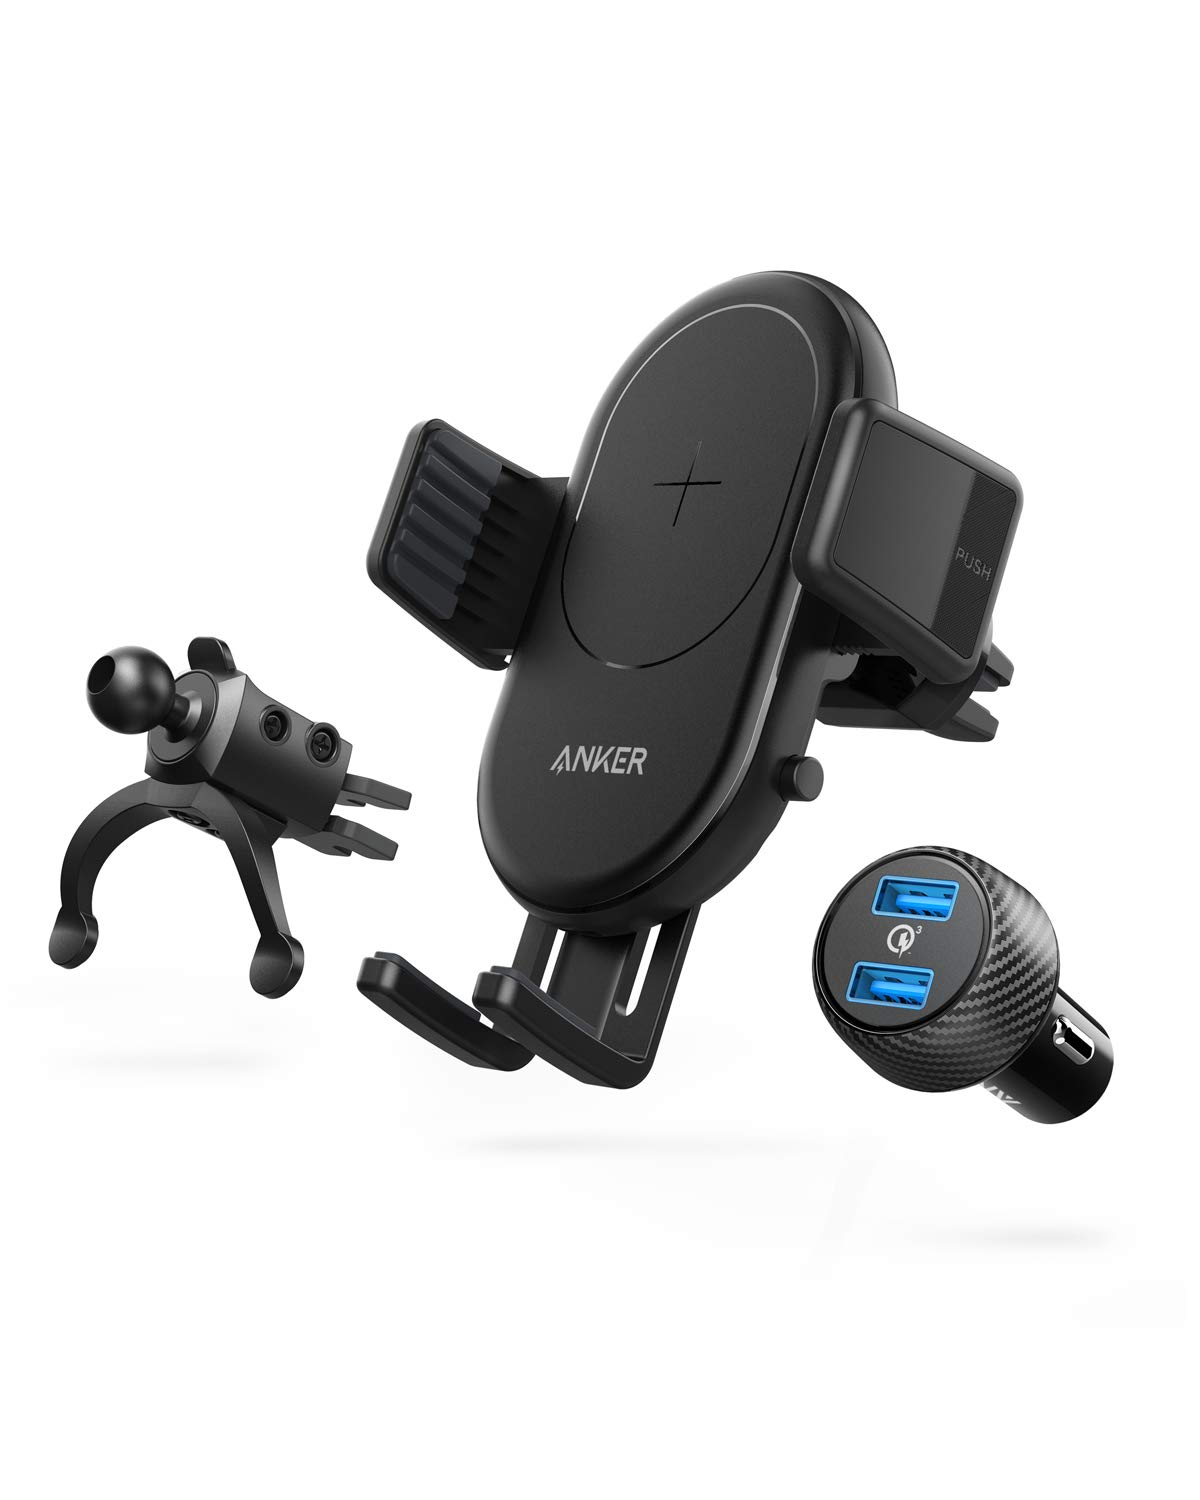 Anker PowerWave Fast Wireless Car Charger with Air Vent Phone Holder, Qi-Certified, 7.5W Fast Charging iPhone Xs Max/XR/XS/X/8/8 Plus, 10W for Galaxy S9/S9+/S8/S8+ (Quick Charge Car Charger Included) by Anker